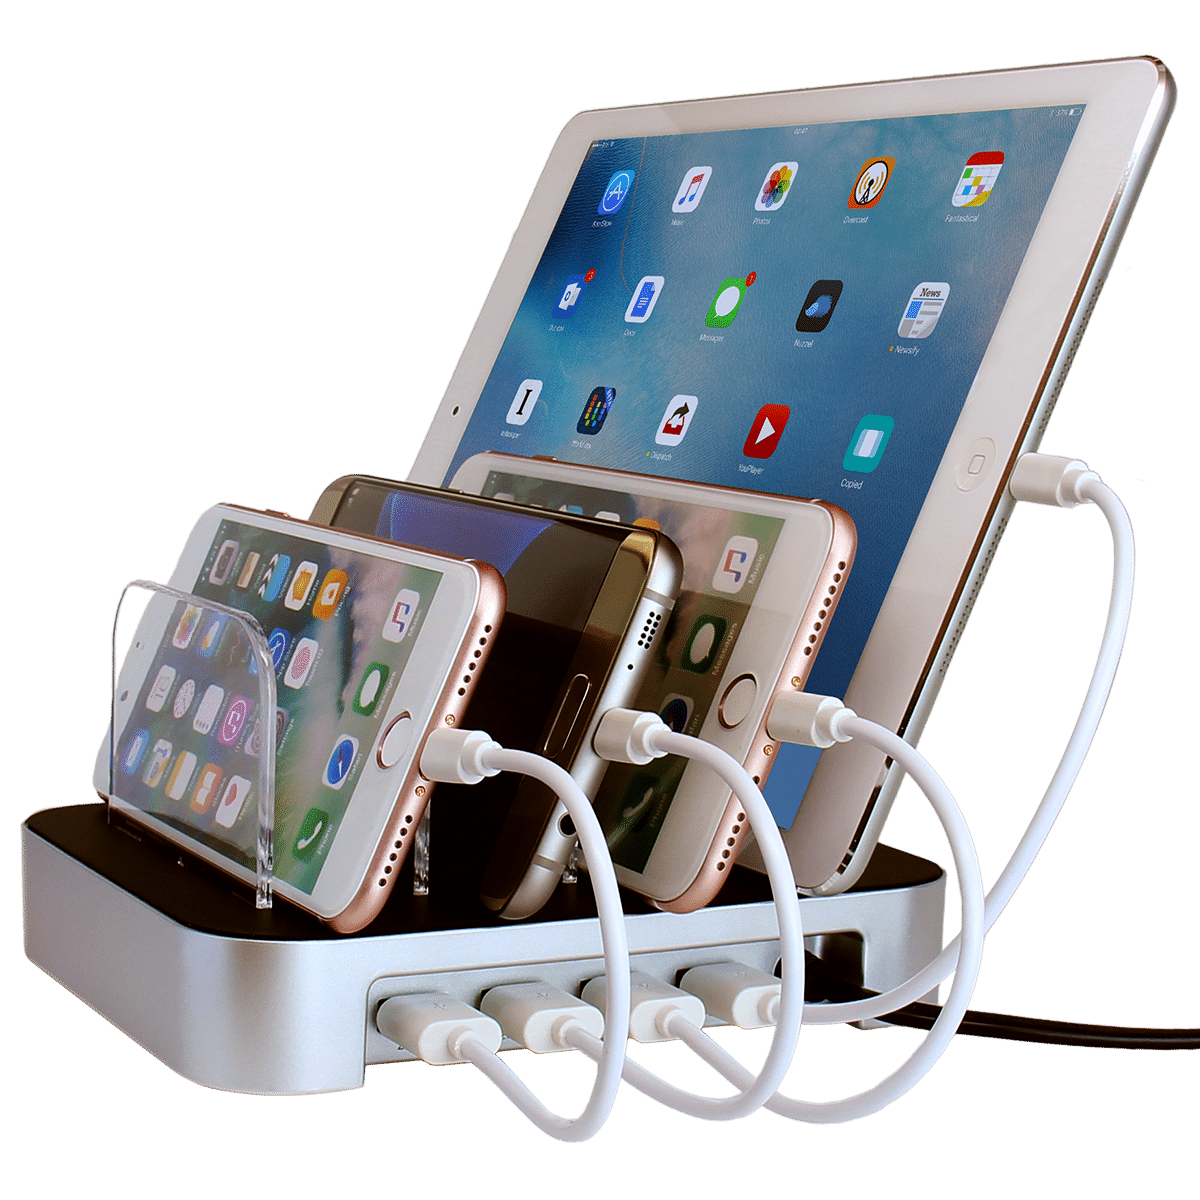 One Charger For All Of Your Cell Phones And Tablets Top Rated Usb Charging Station Organizer To Quickly Safely Charge Electronic Devices